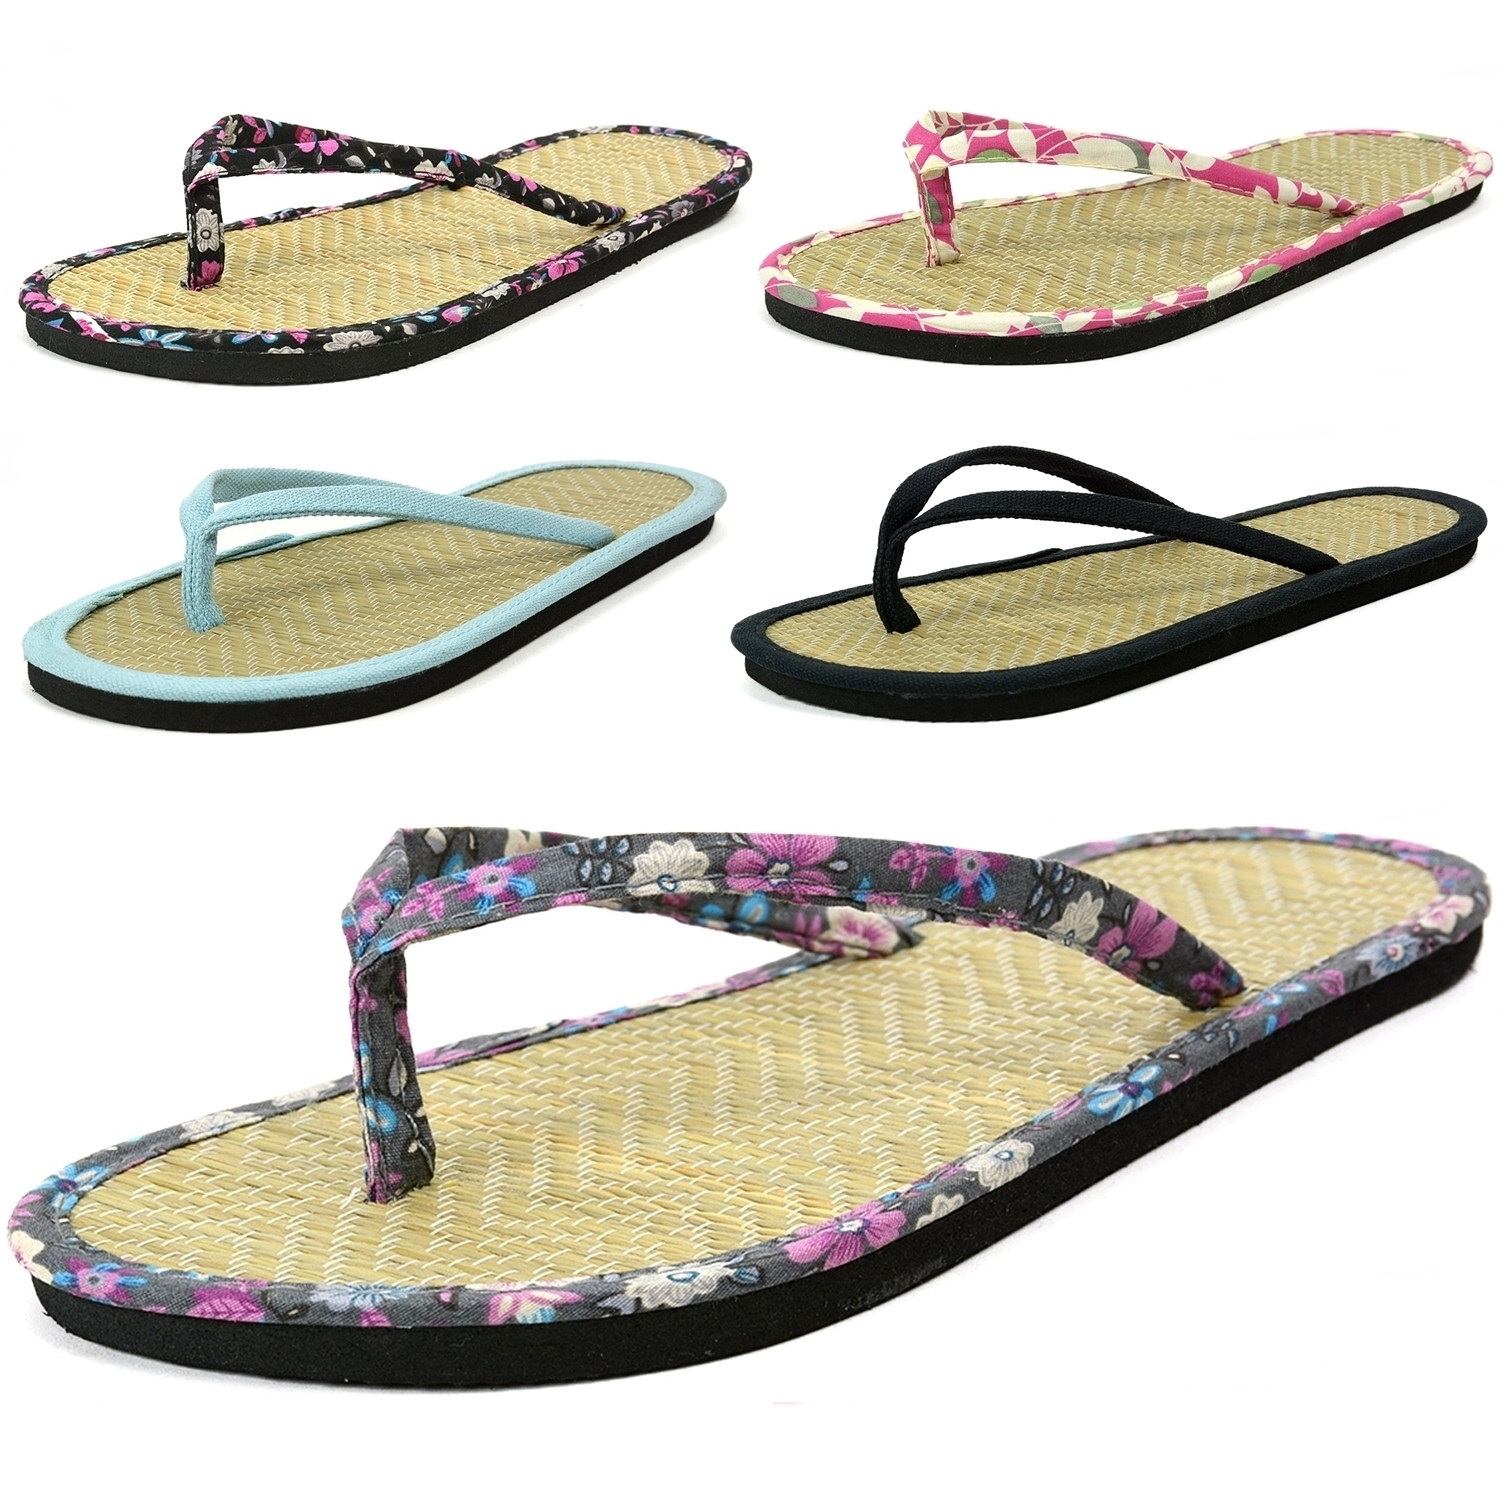 Bamboo designs sandals, and boots for both women and girls. You can browse the different Bamboo styles at Tillys.